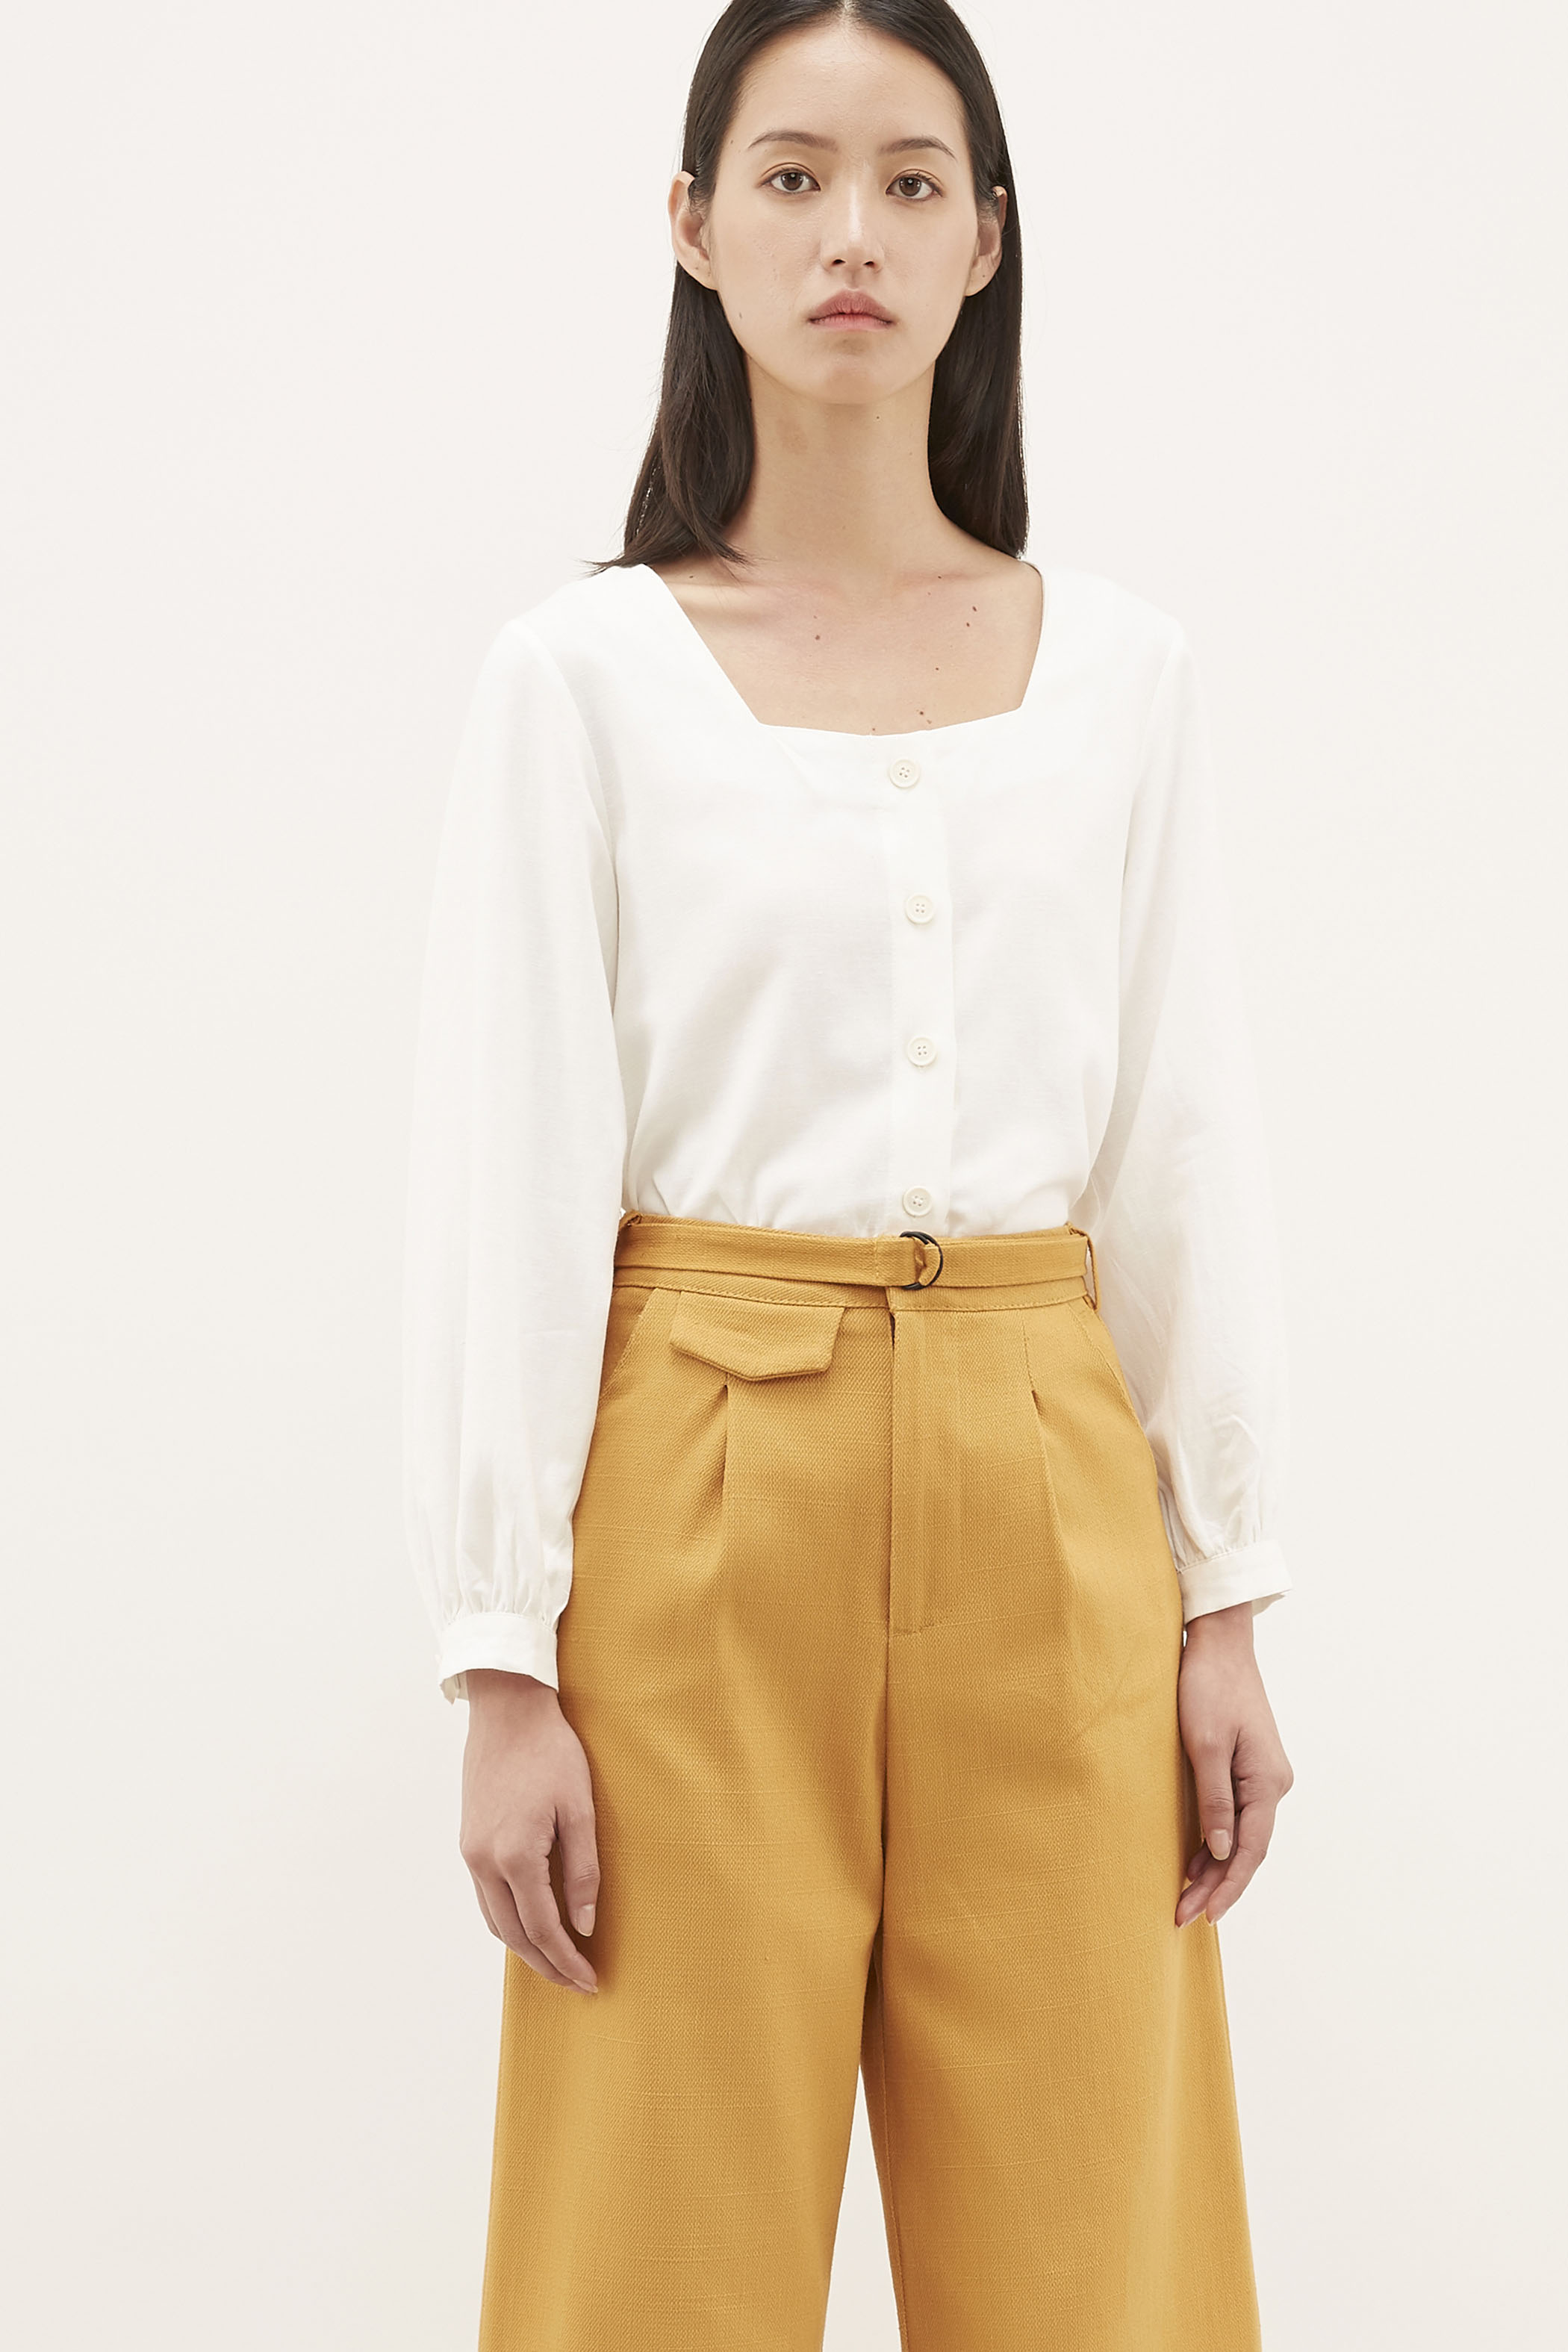 Zakira Square-neck Blouse